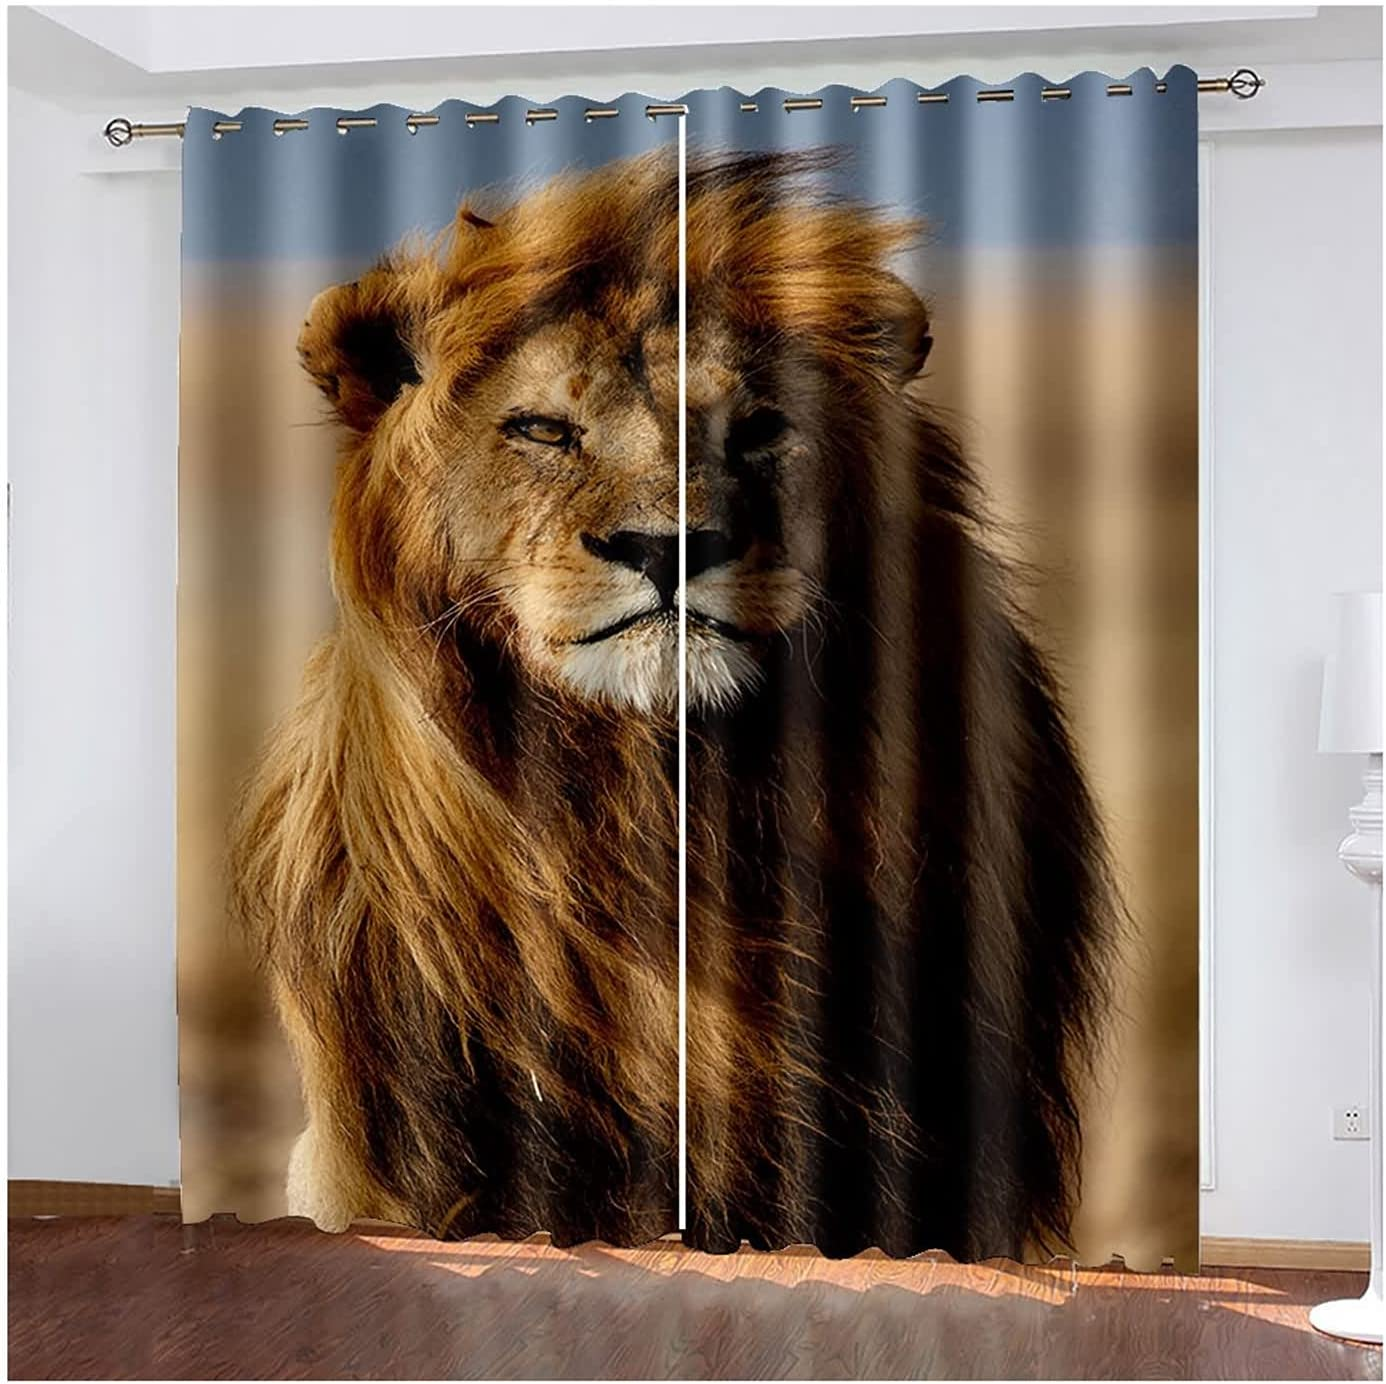 Curtains Living Max 59% OFF Room 2 Panels Bedroom Very popular Windows Lion for